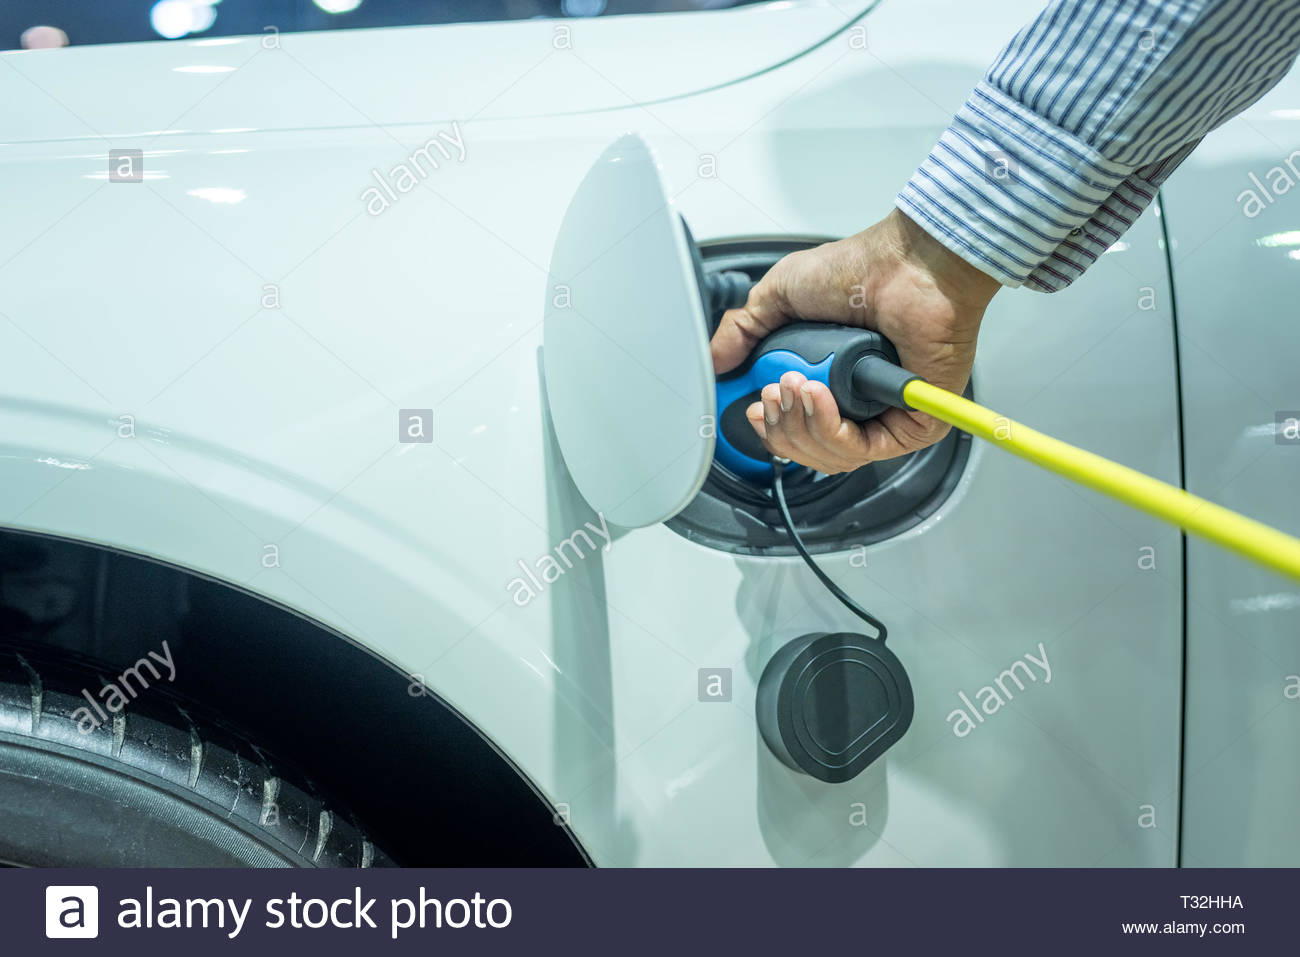 Hand plug the charger access to vehicle electrification. Hybrid car and technology automotive concept - Stock Image